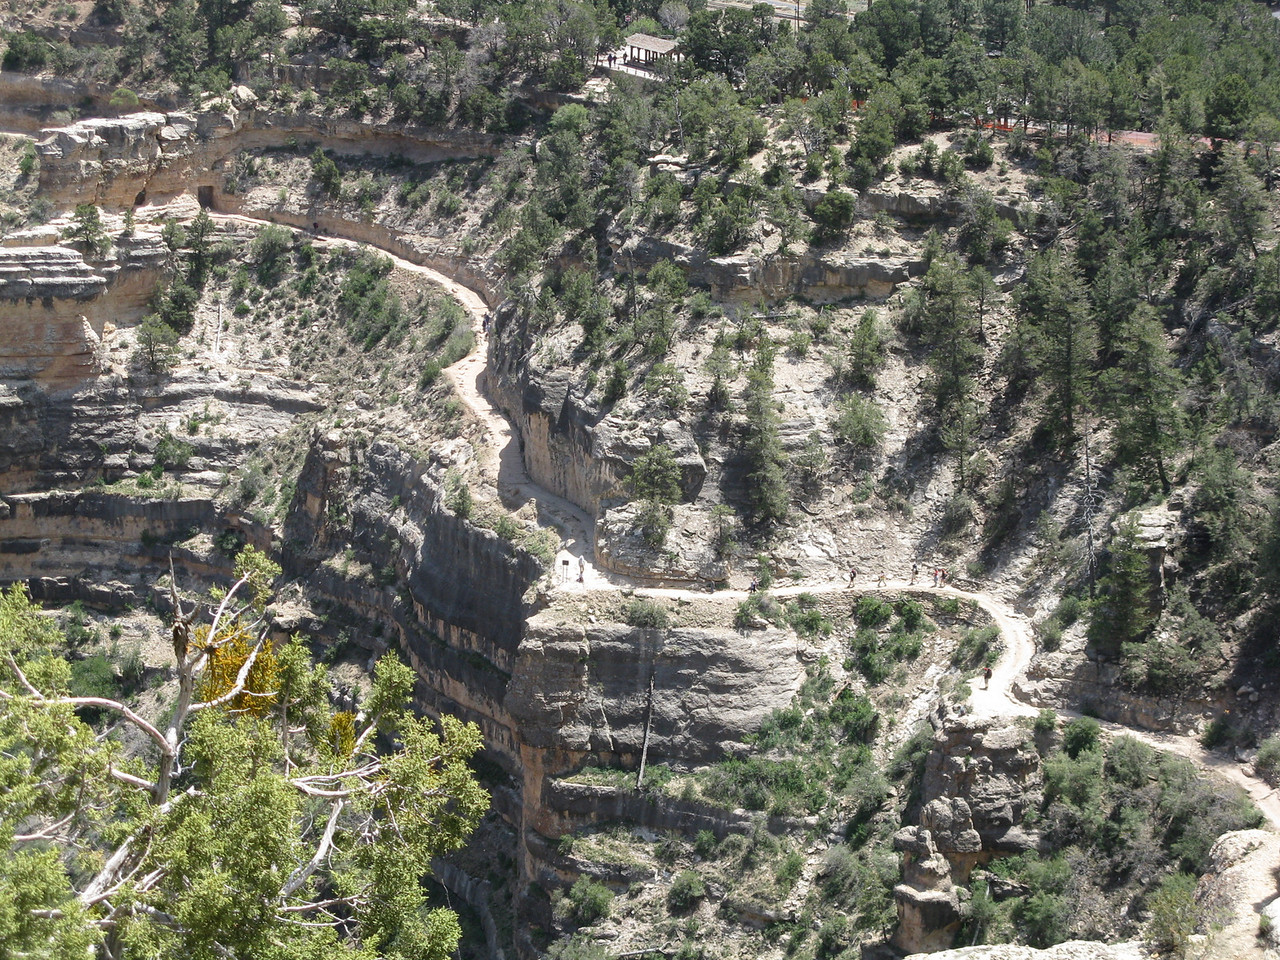 The Bright Angel Trail as it leads up to the first tunnel, which is in the top left corner of the picture.